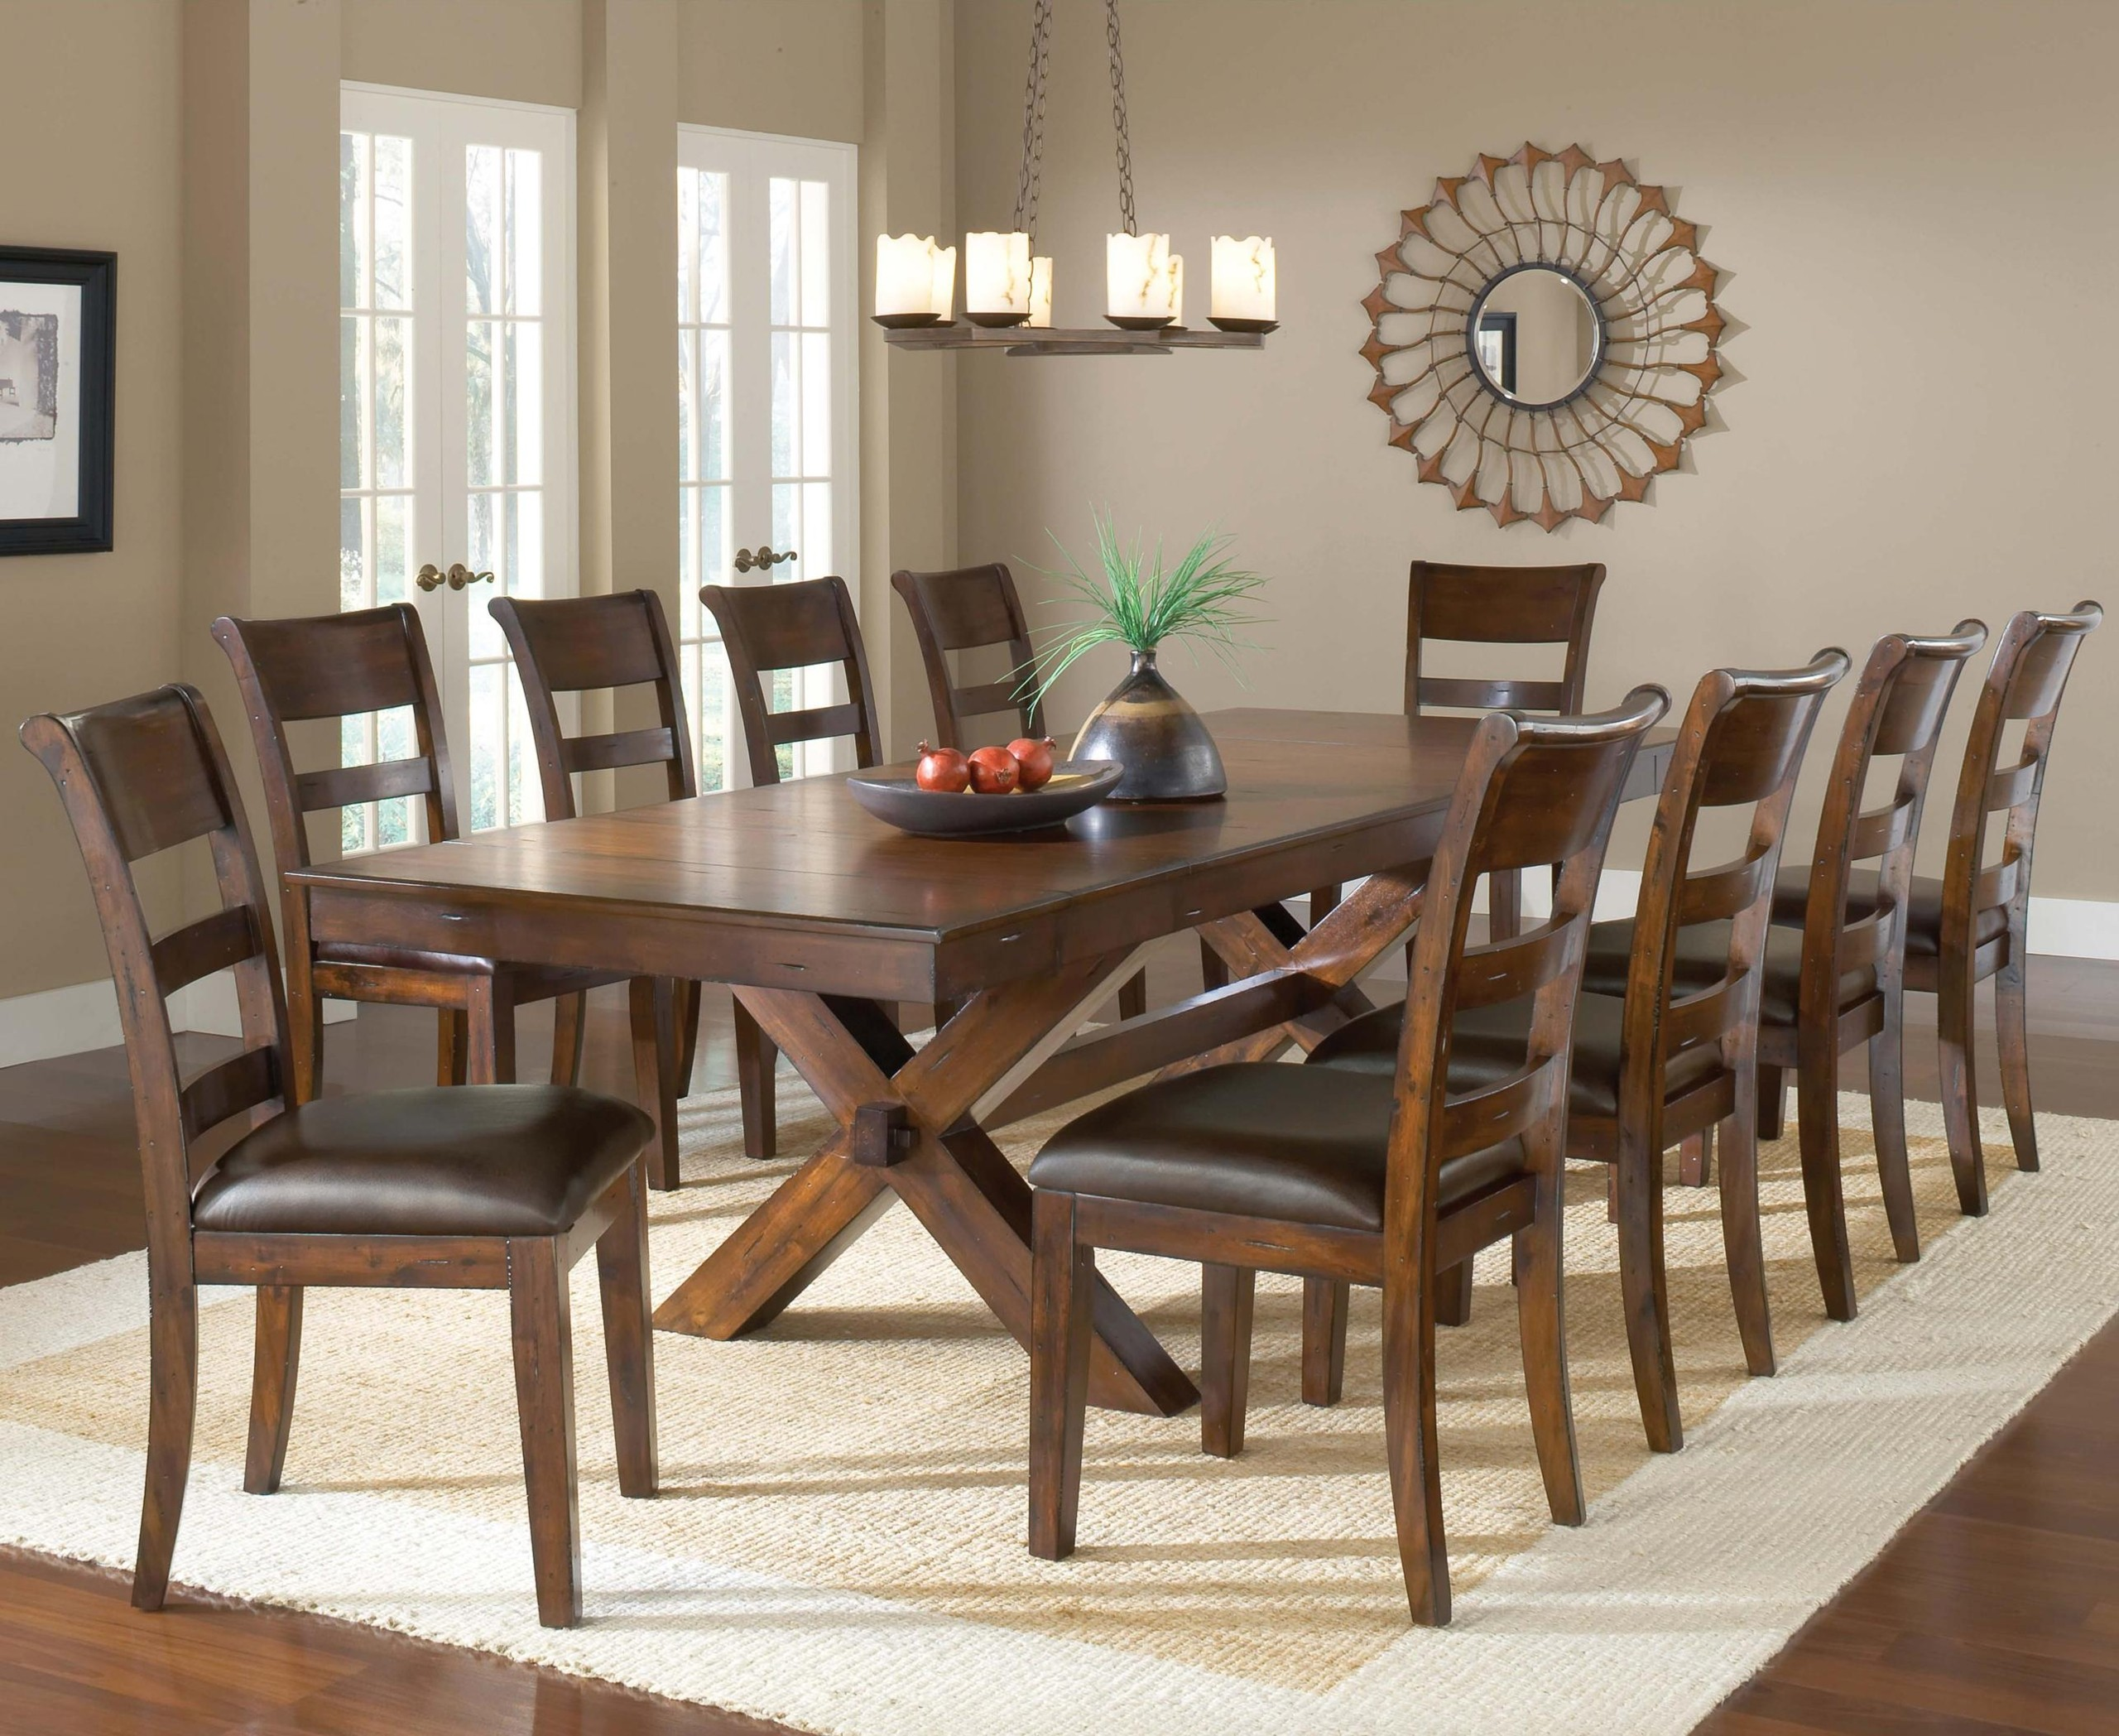 Large Dining Tables To Seat 10